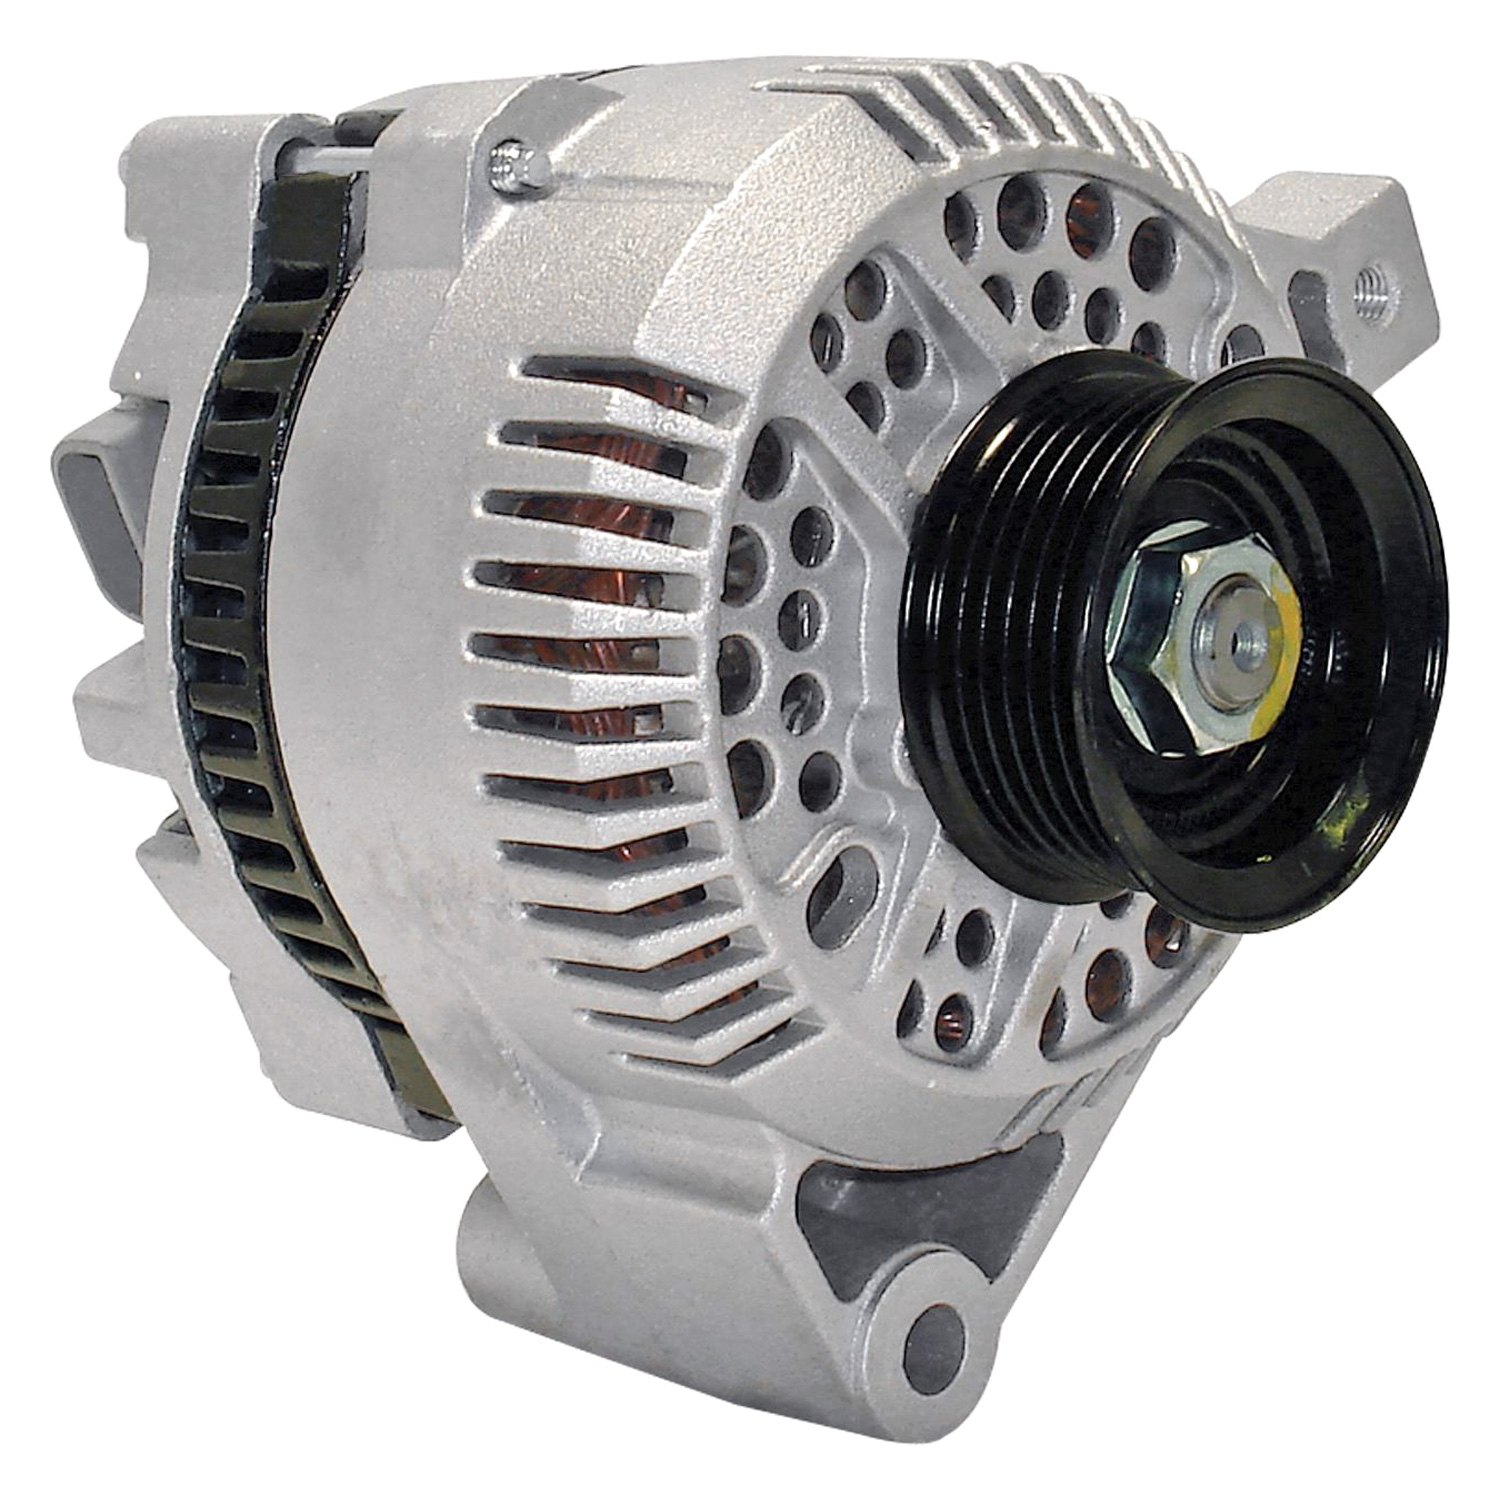 ACDelco 334-2621A Professional Alternator Remanufactured